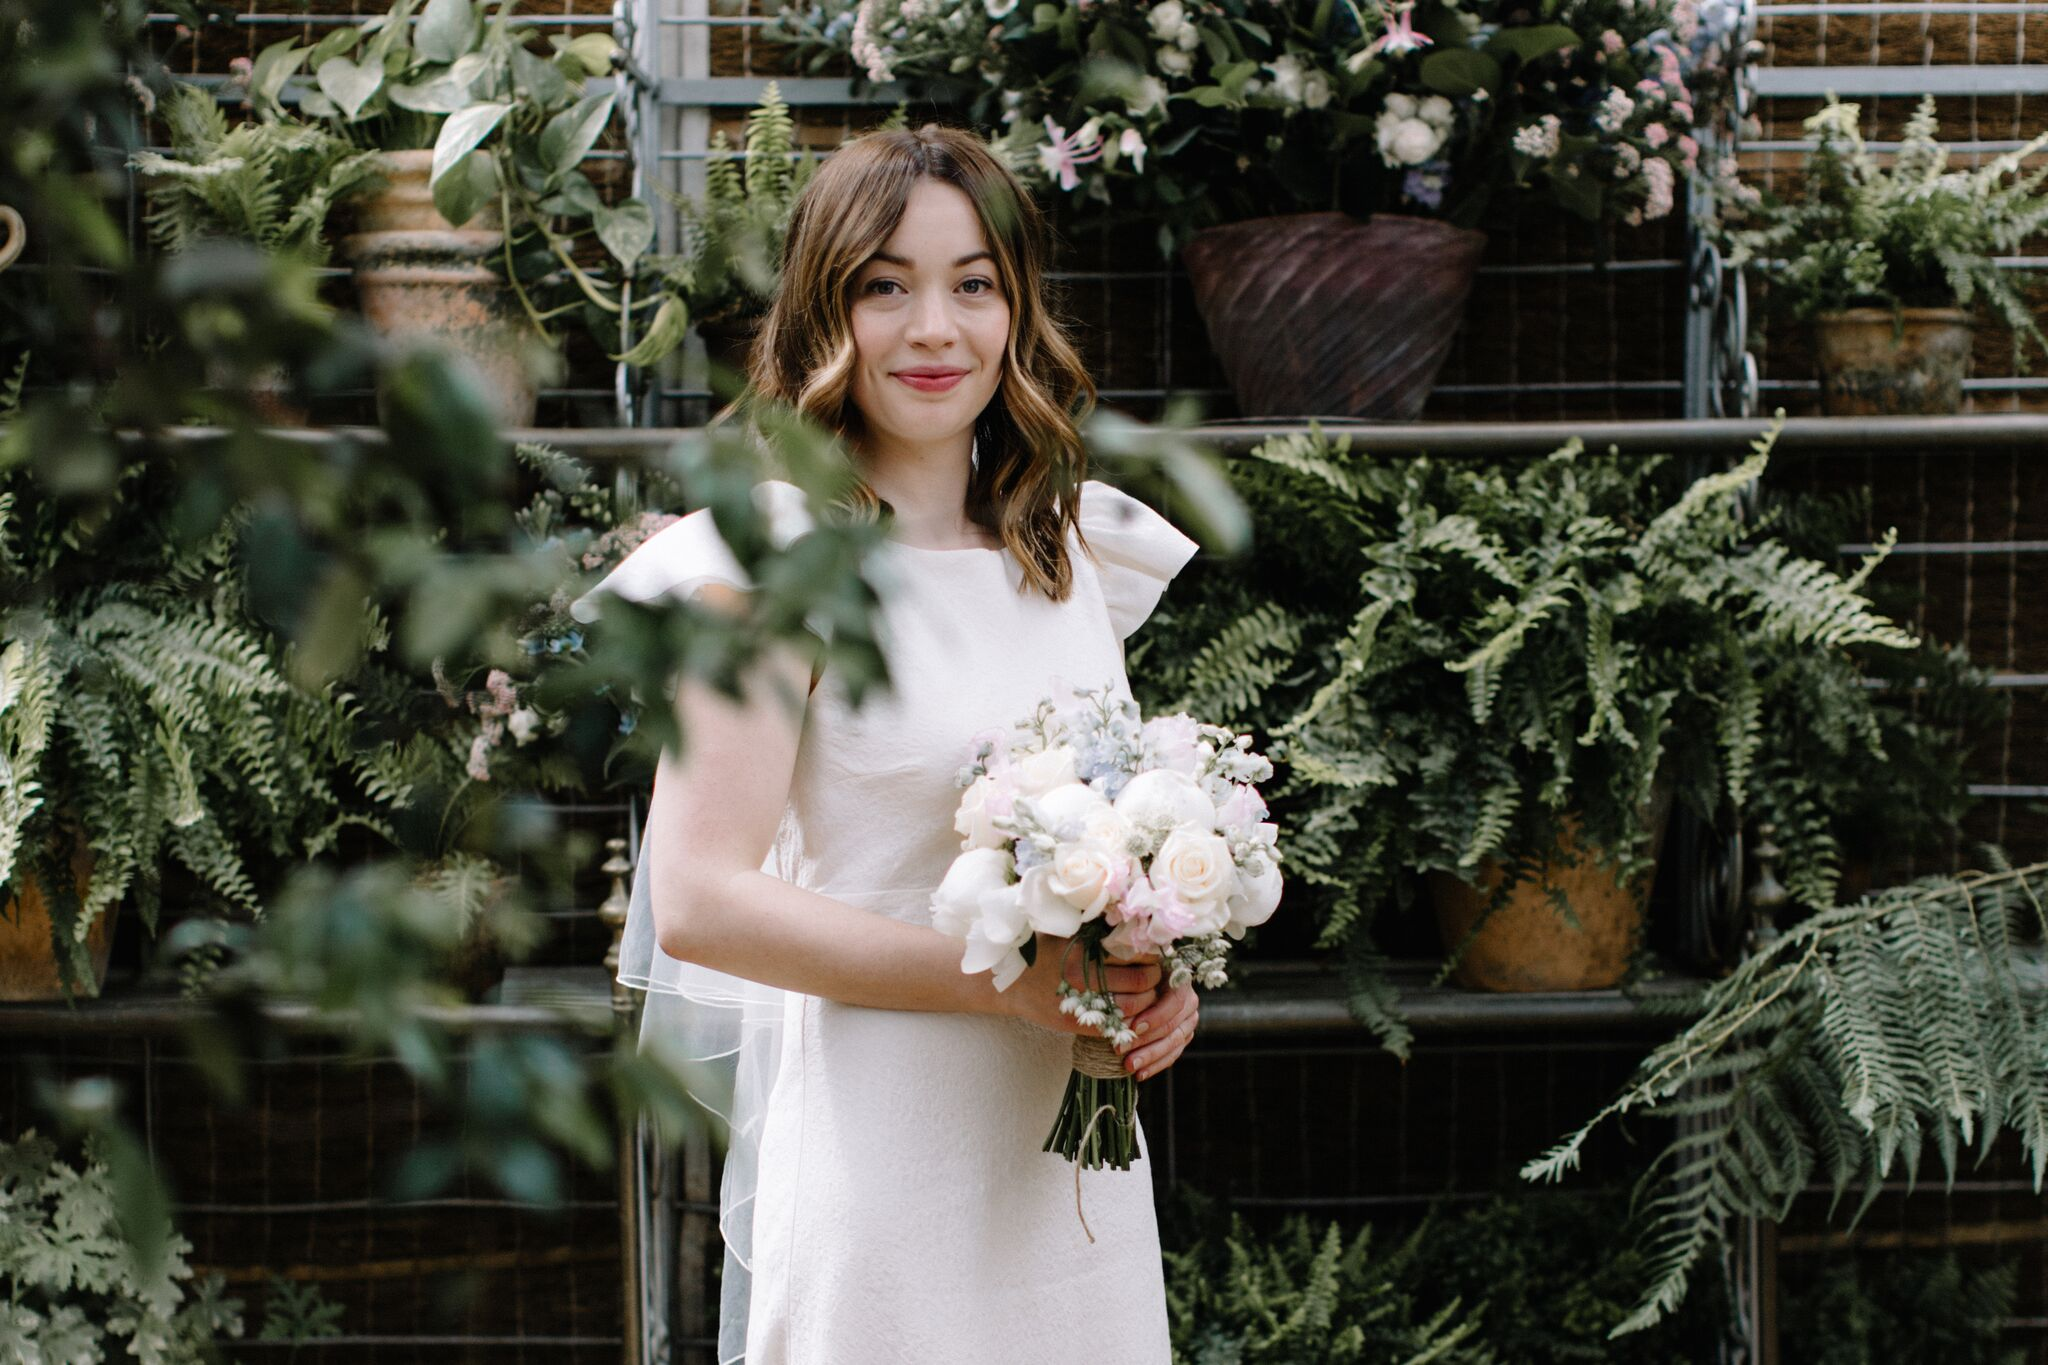 Charlotte's flair has found favour amongst brides across the UK